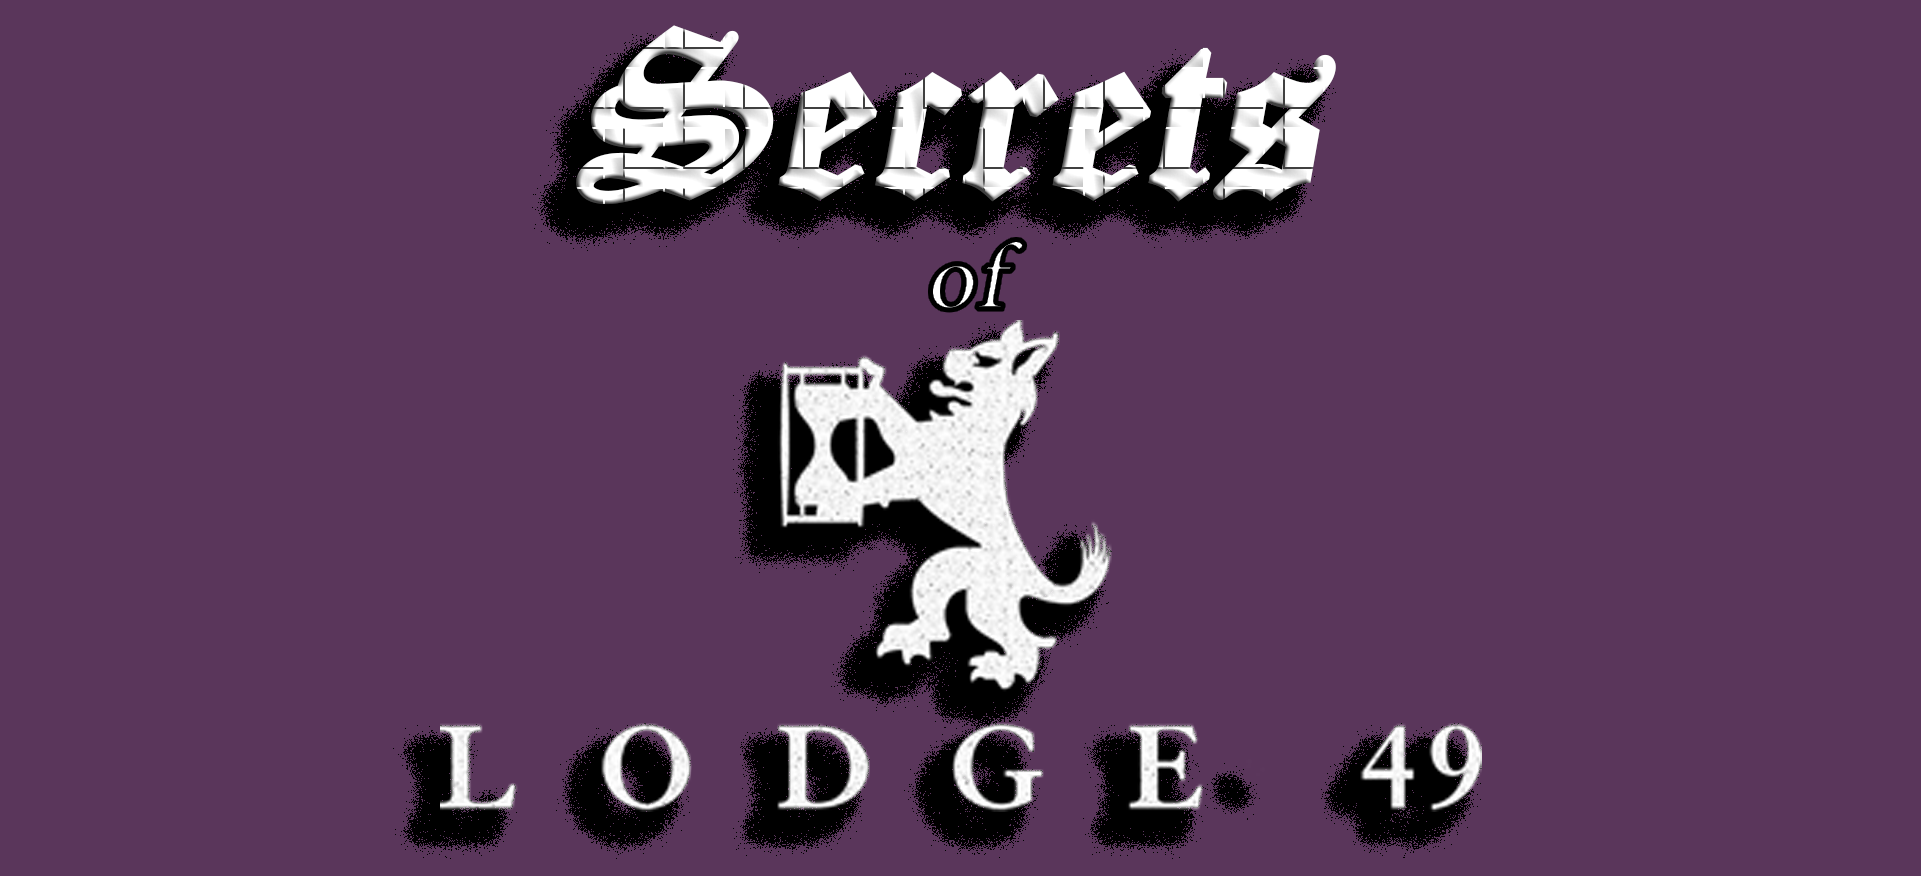 What are the Secrets of Lodge 49??